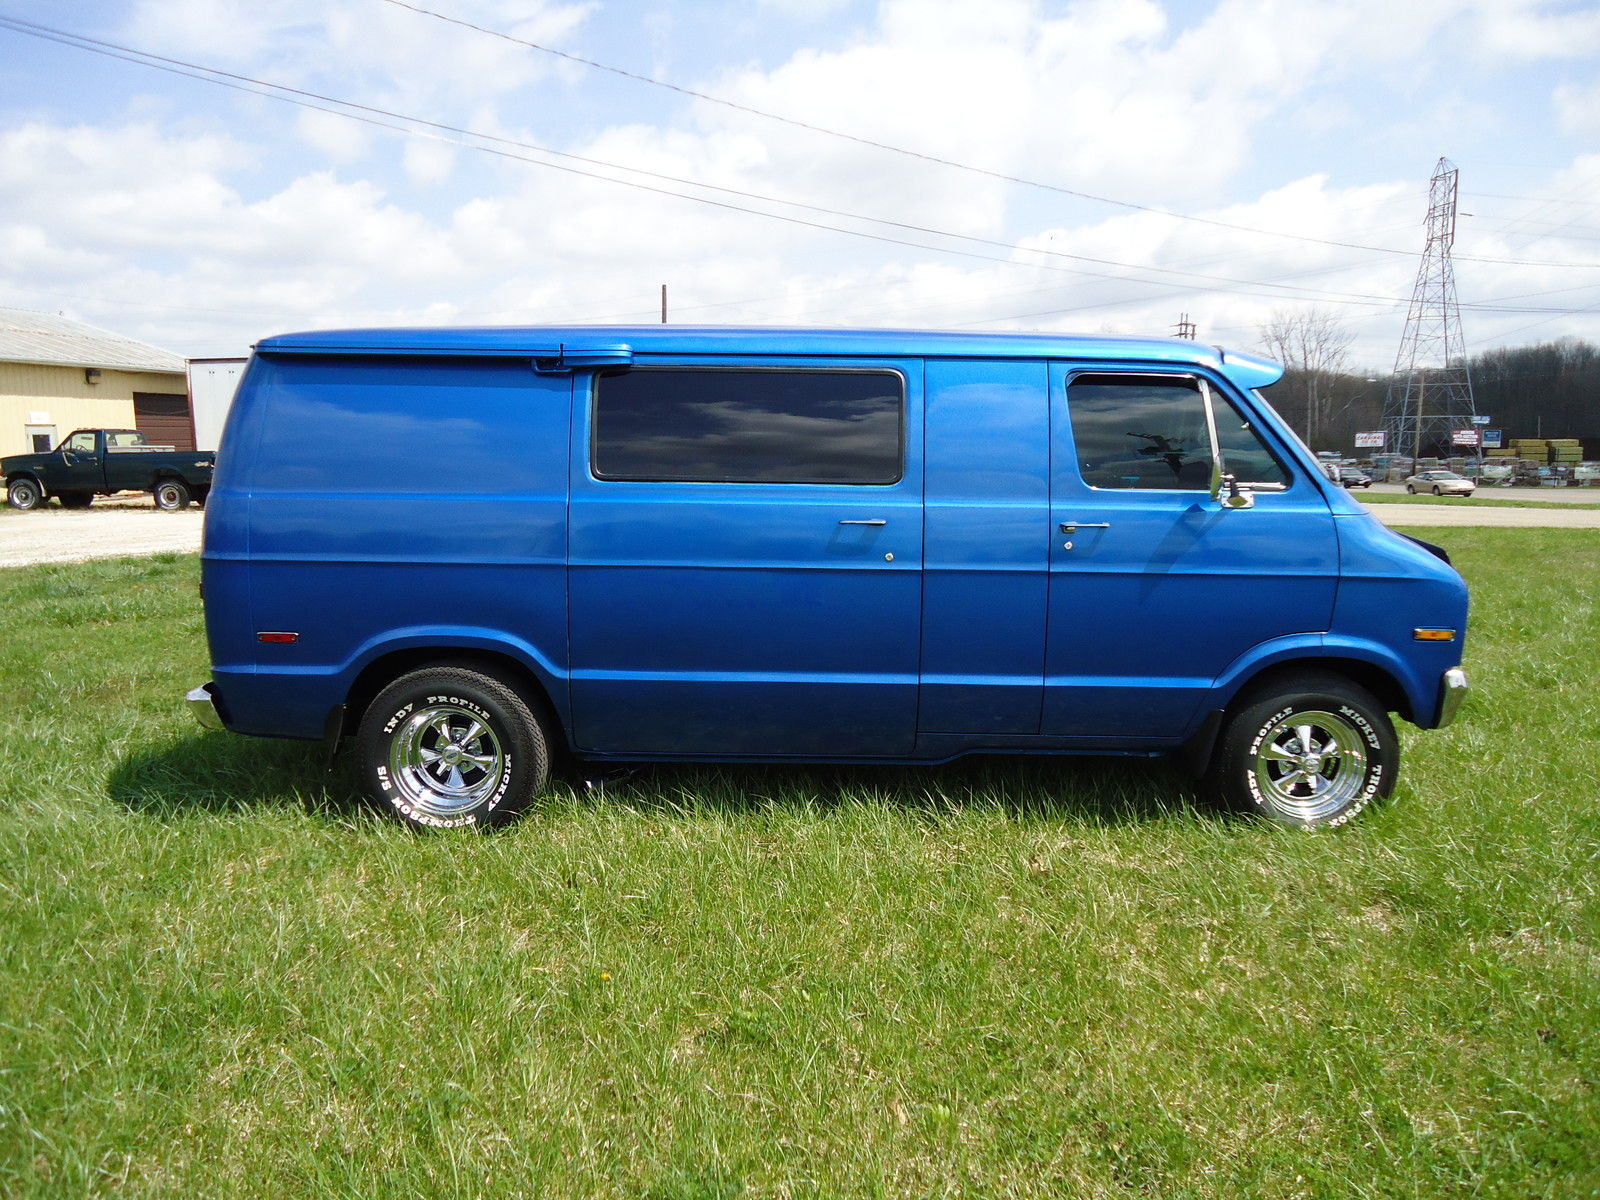 1977 dodge van - Classic Dodge Ram Van 1977 for sale